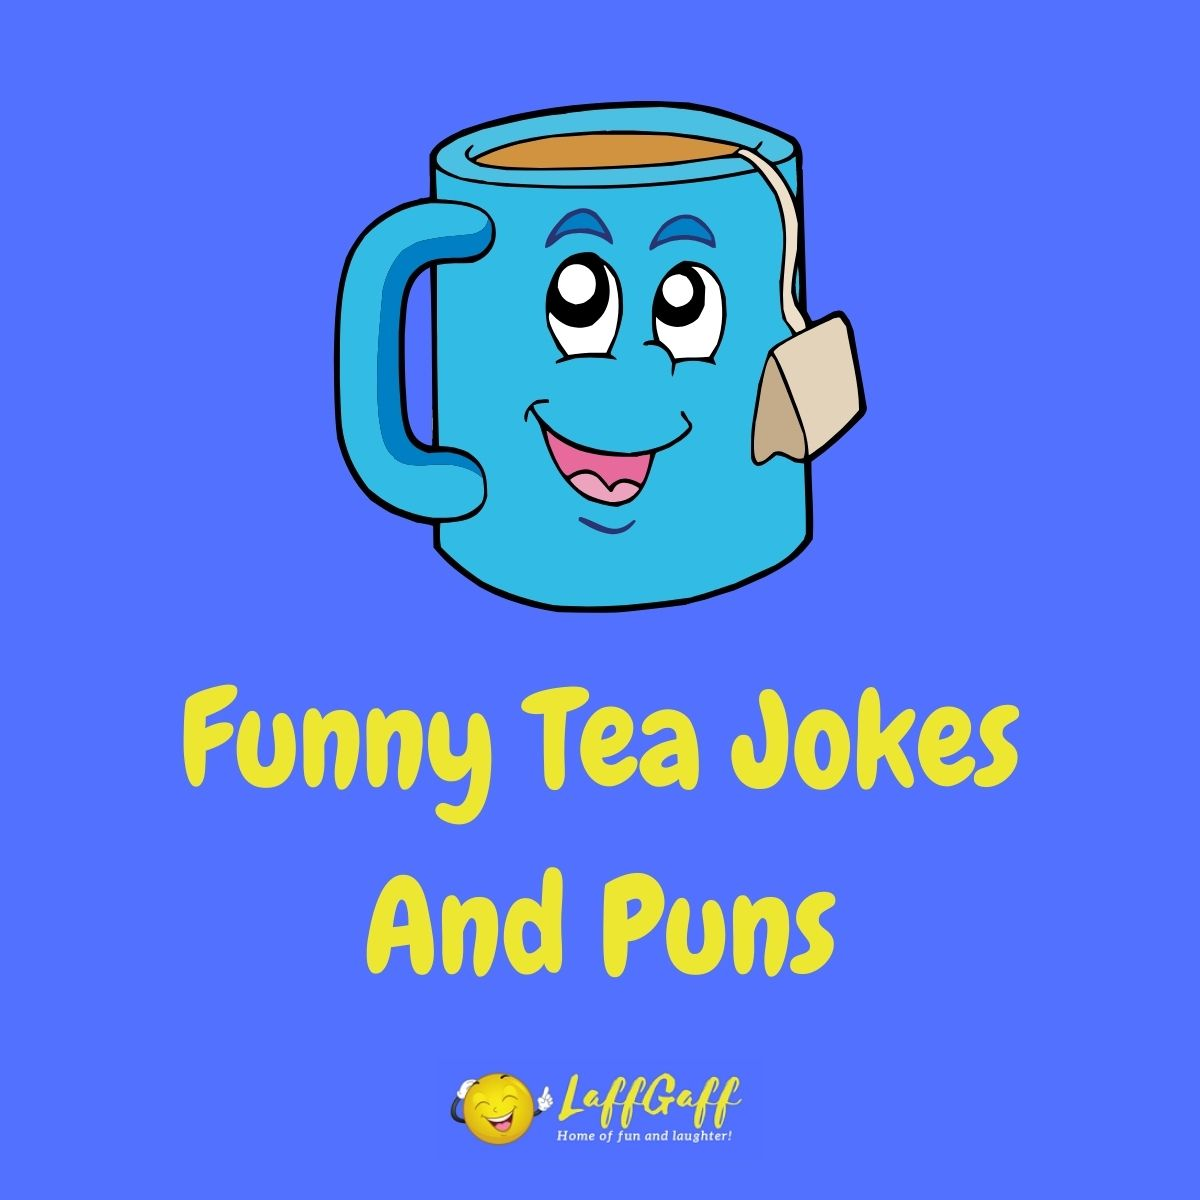 Featured image for a page of funny tea jokes and puns.